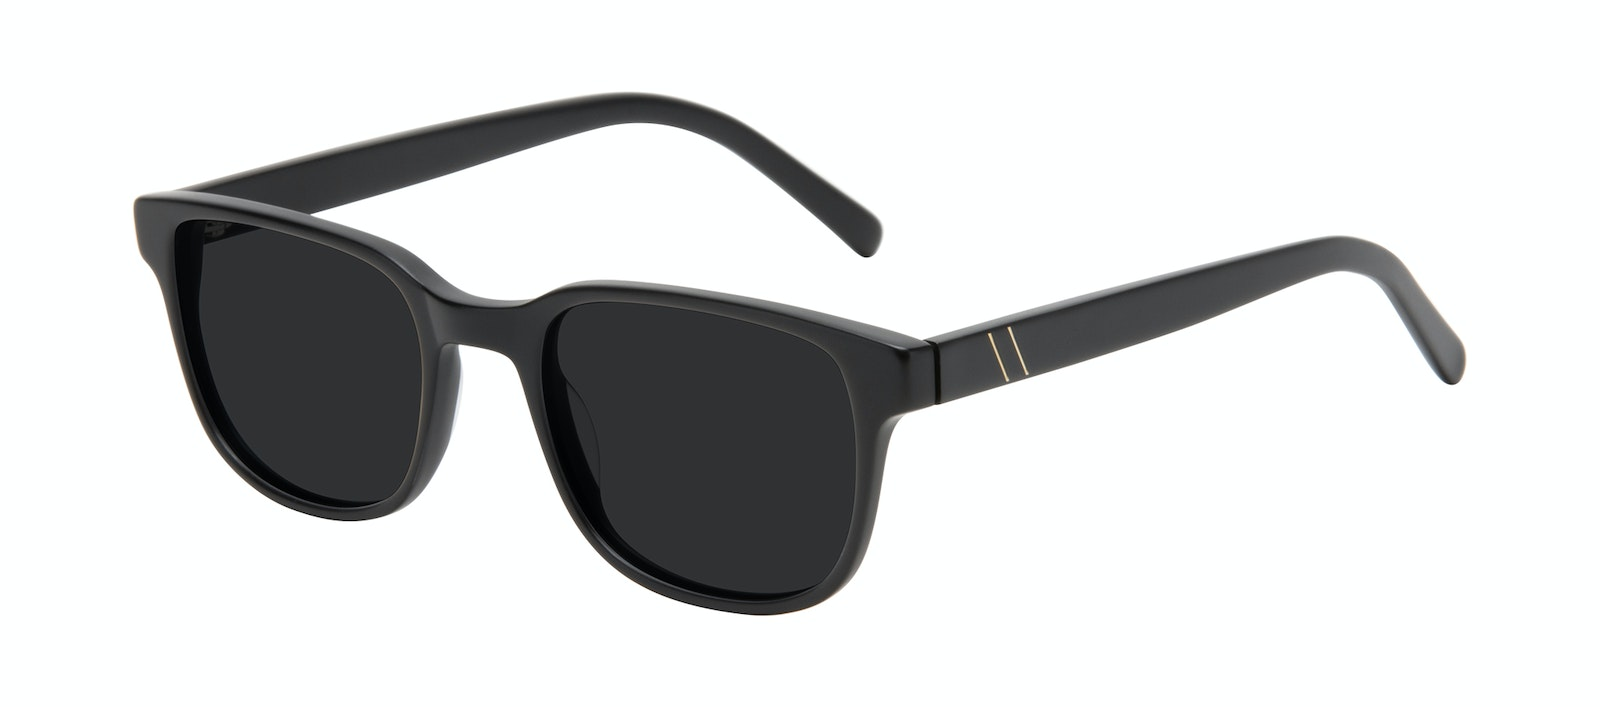 Affordable Fashion Glasses Square Sunglasses Men Role Black Matte Tilt